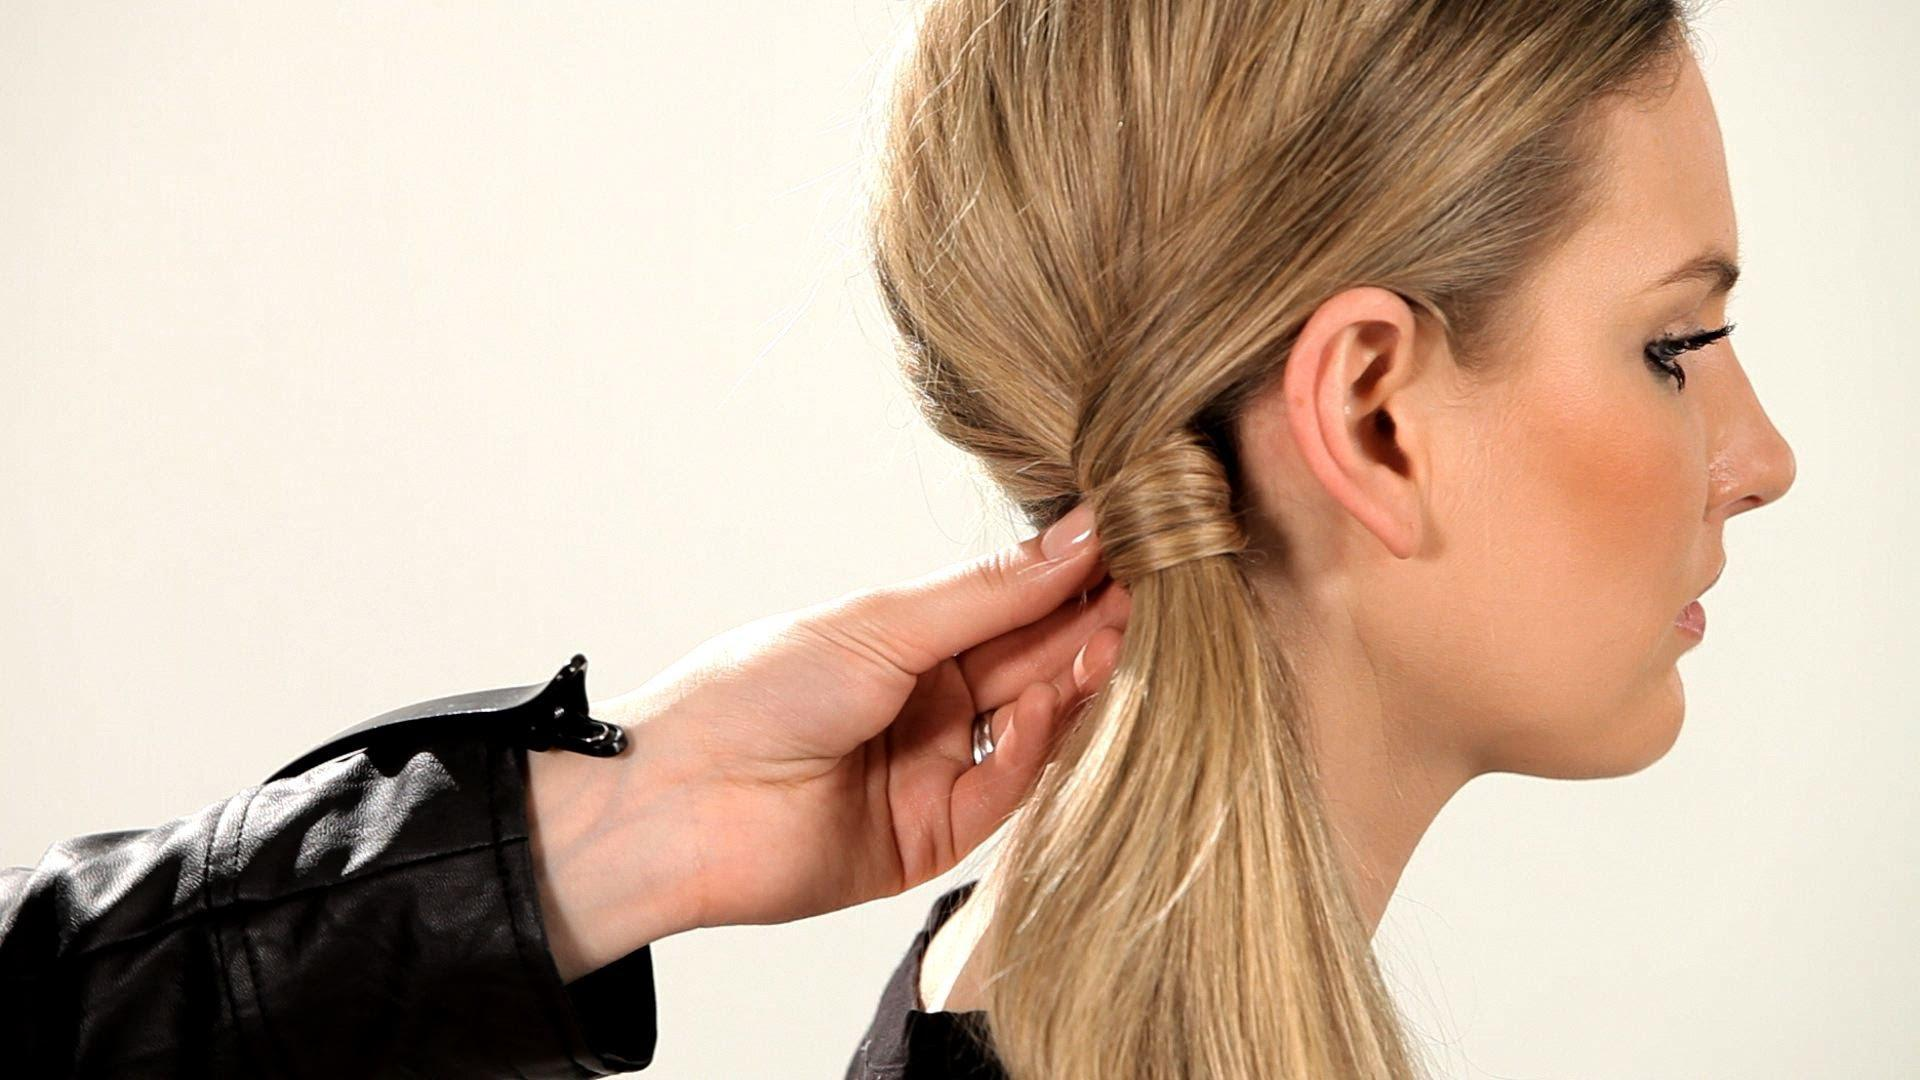 9 Adorable Ponytail Hairstyles That You'll Love | HairClipperCenter